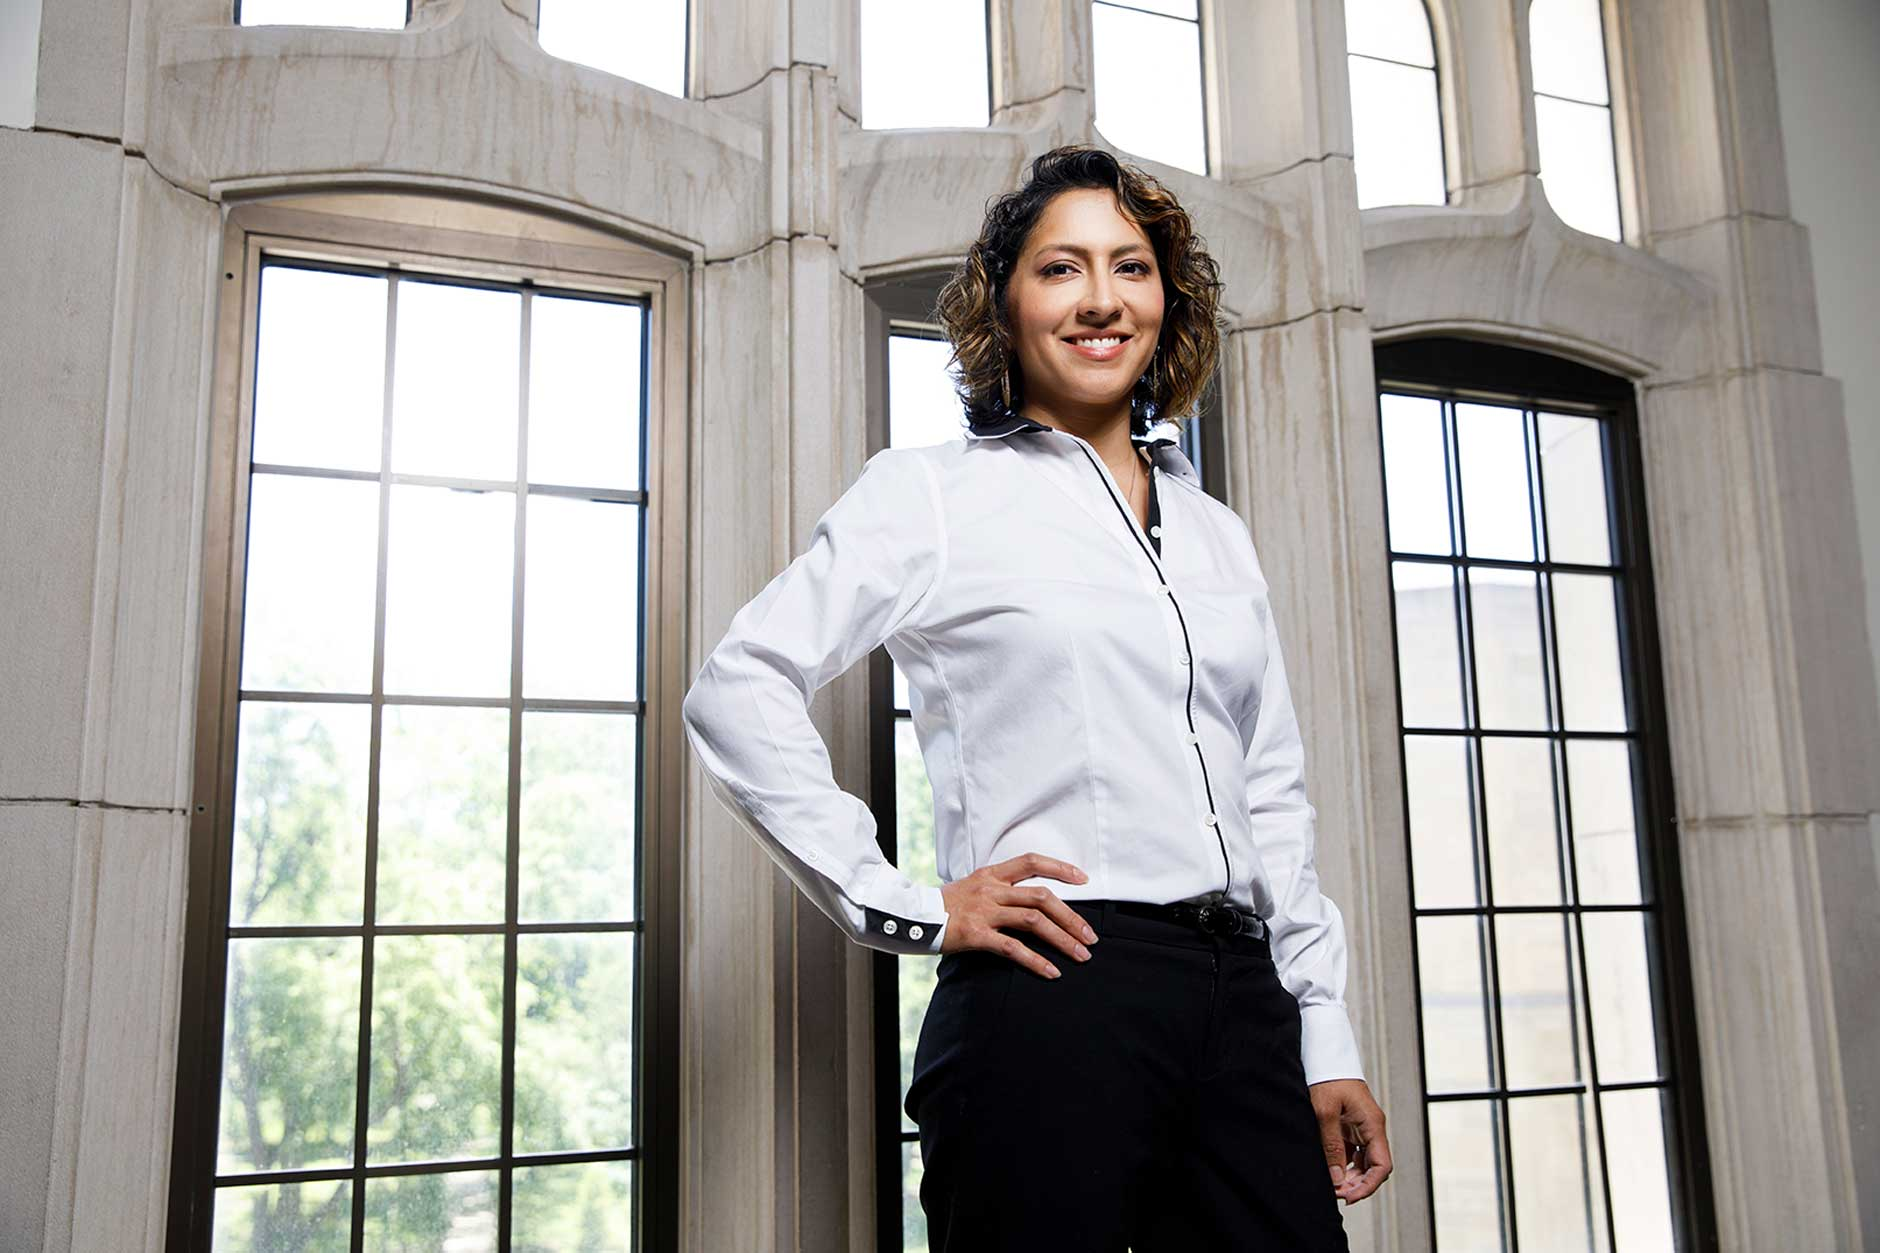 Indiana University Visiting Assistant Professor Vanessa Cruz Nichols poses for a portrait in Woodburn Hall on Thursday, May 24, 2018. (James Brosher/IU Communications)